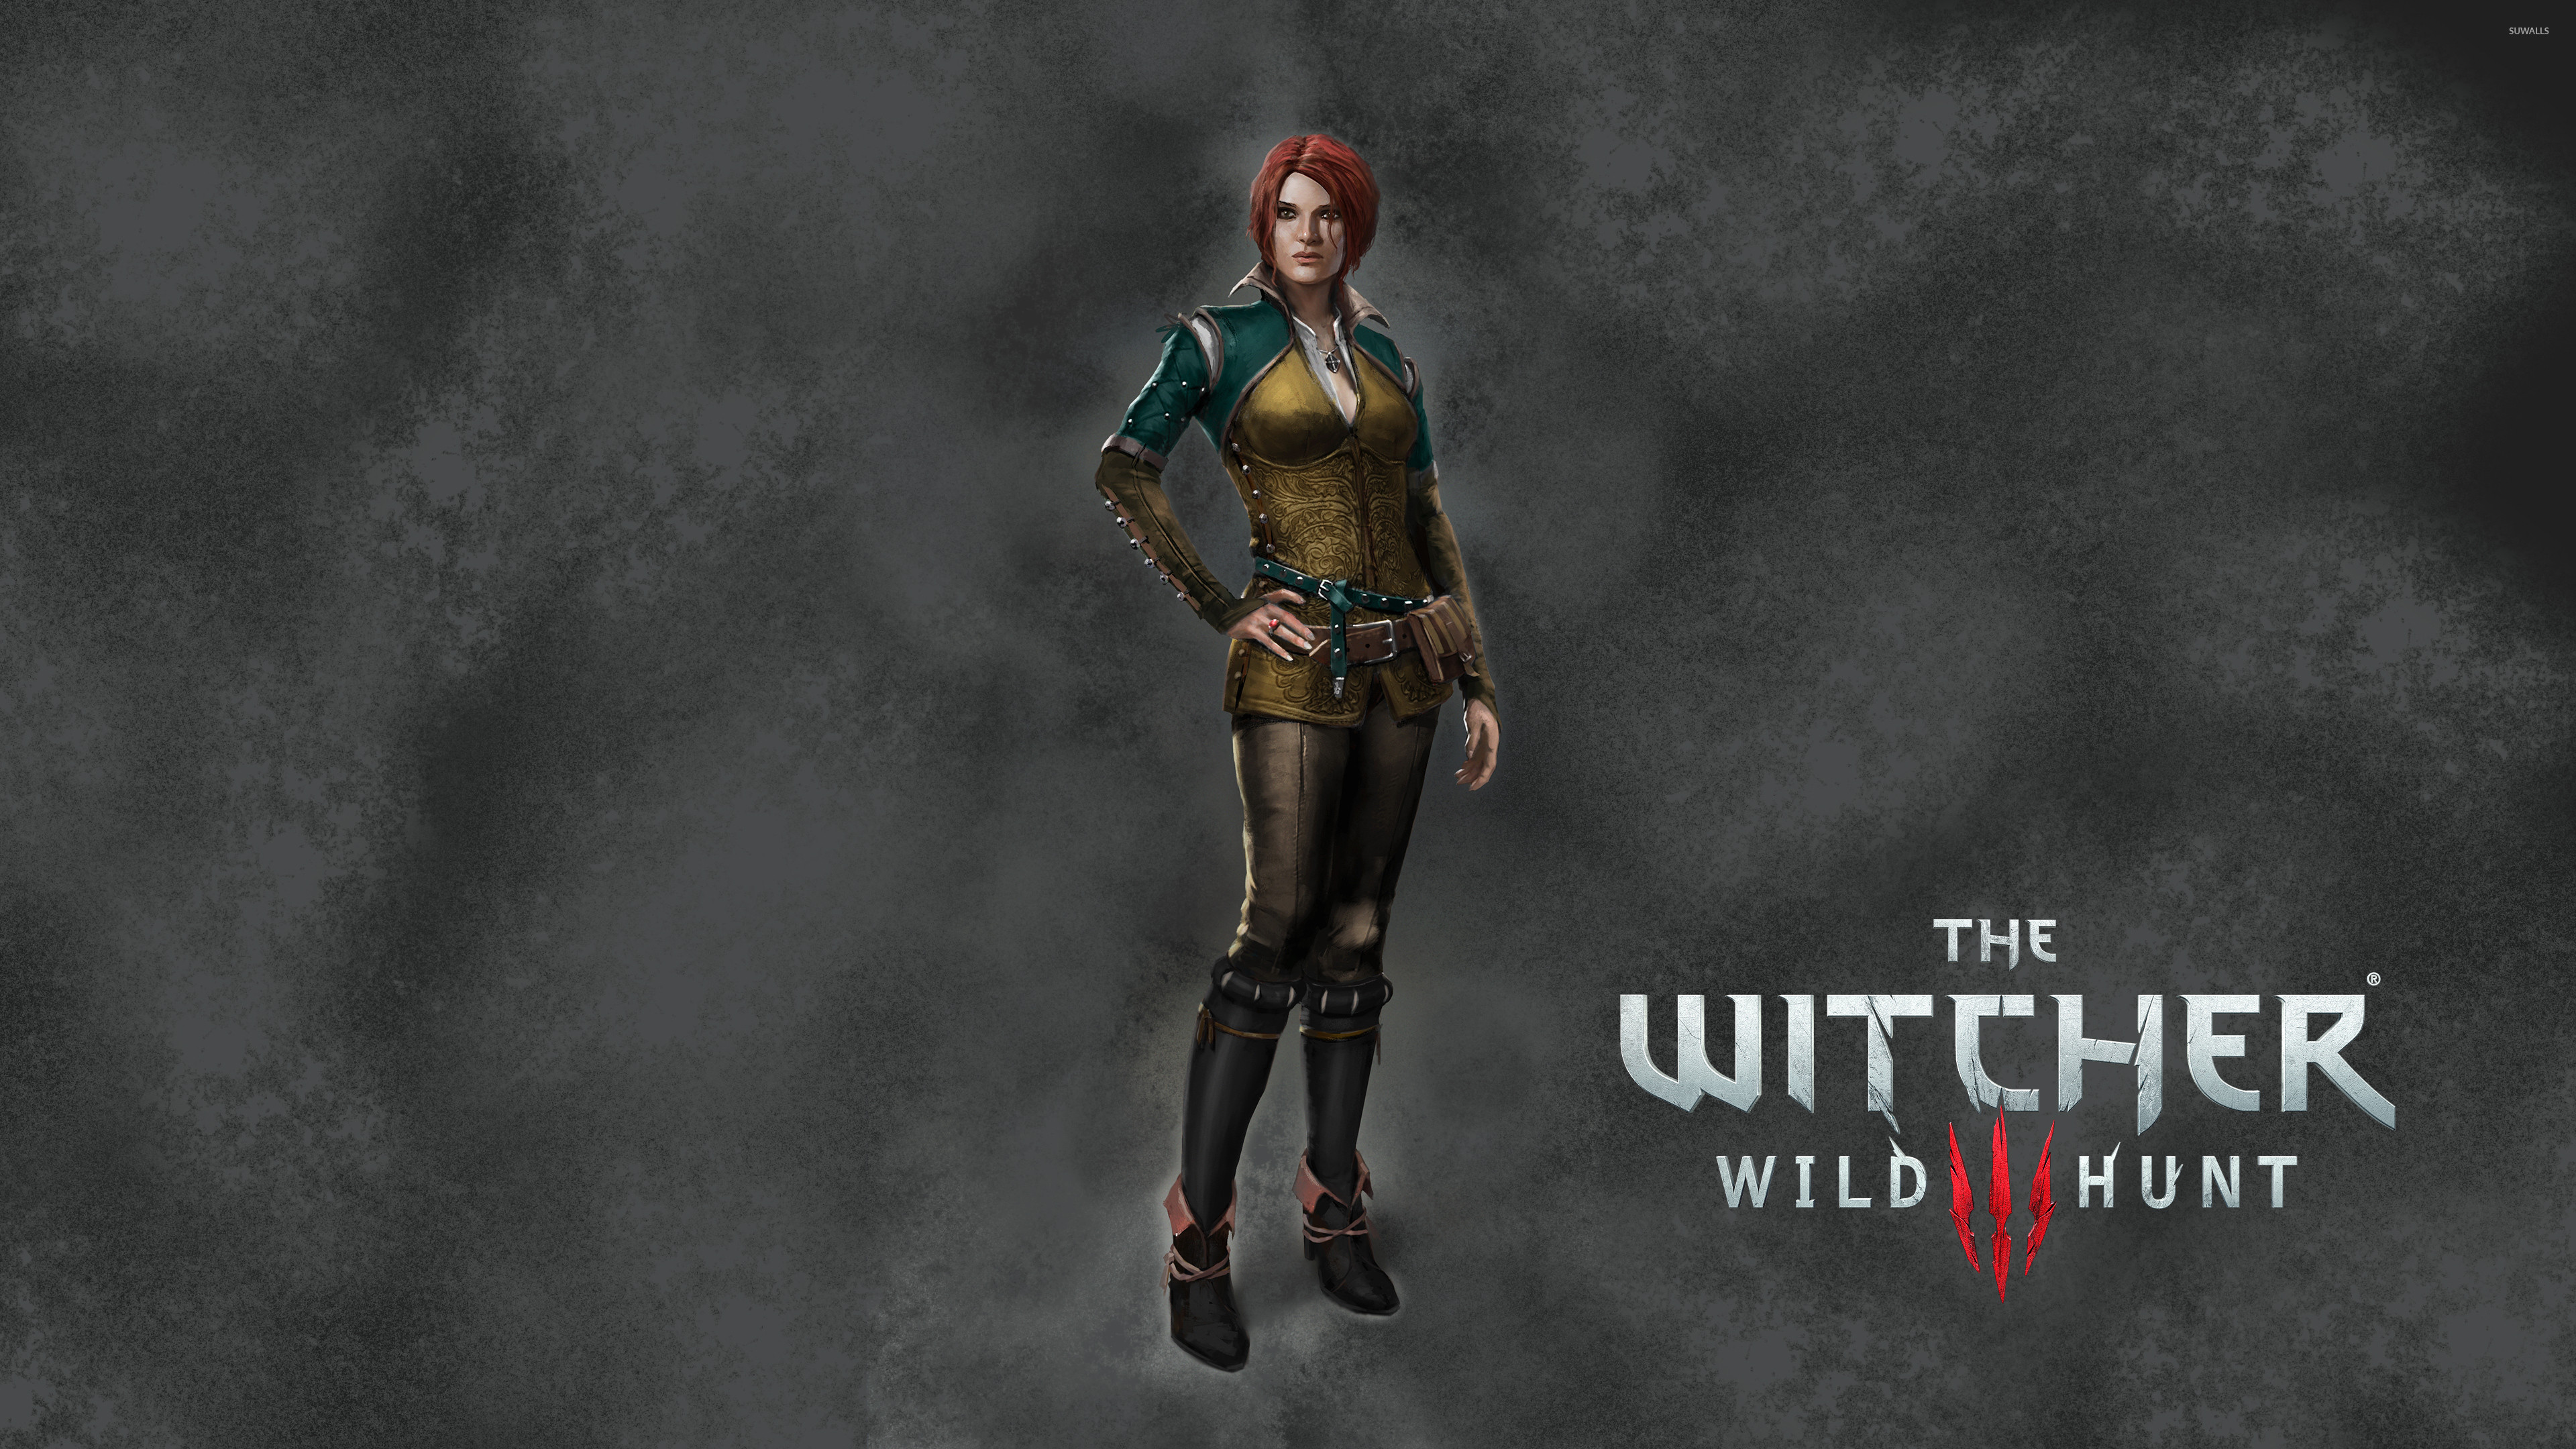 Res: 3840x2160, Triss Merigold in The Witcher 3: Wild Hunt wallpaper